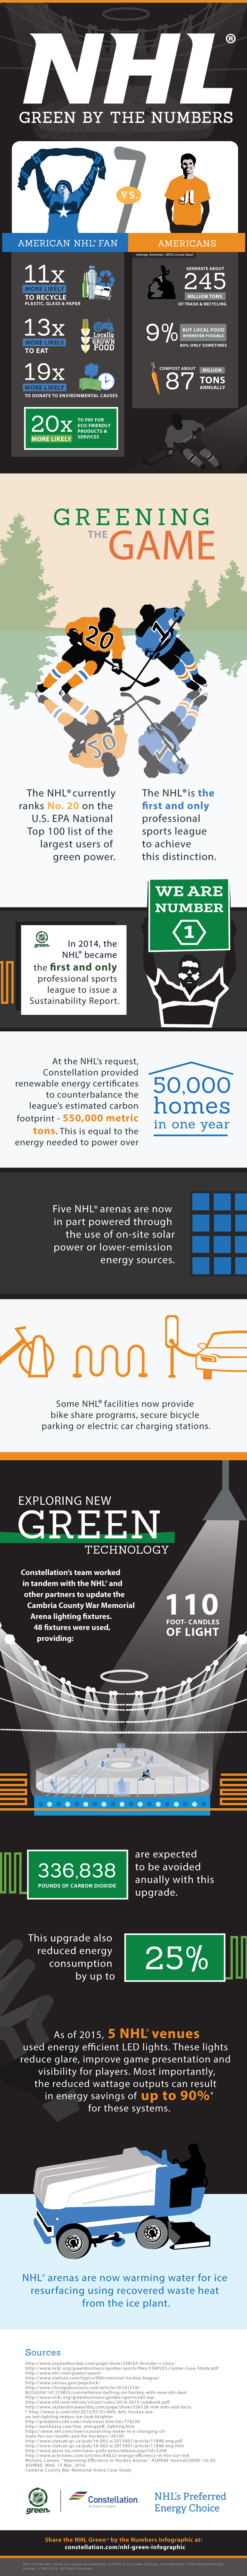 nhl-sustainability-infographic-green-initiatives-in-hockey_5733bd8cd106c